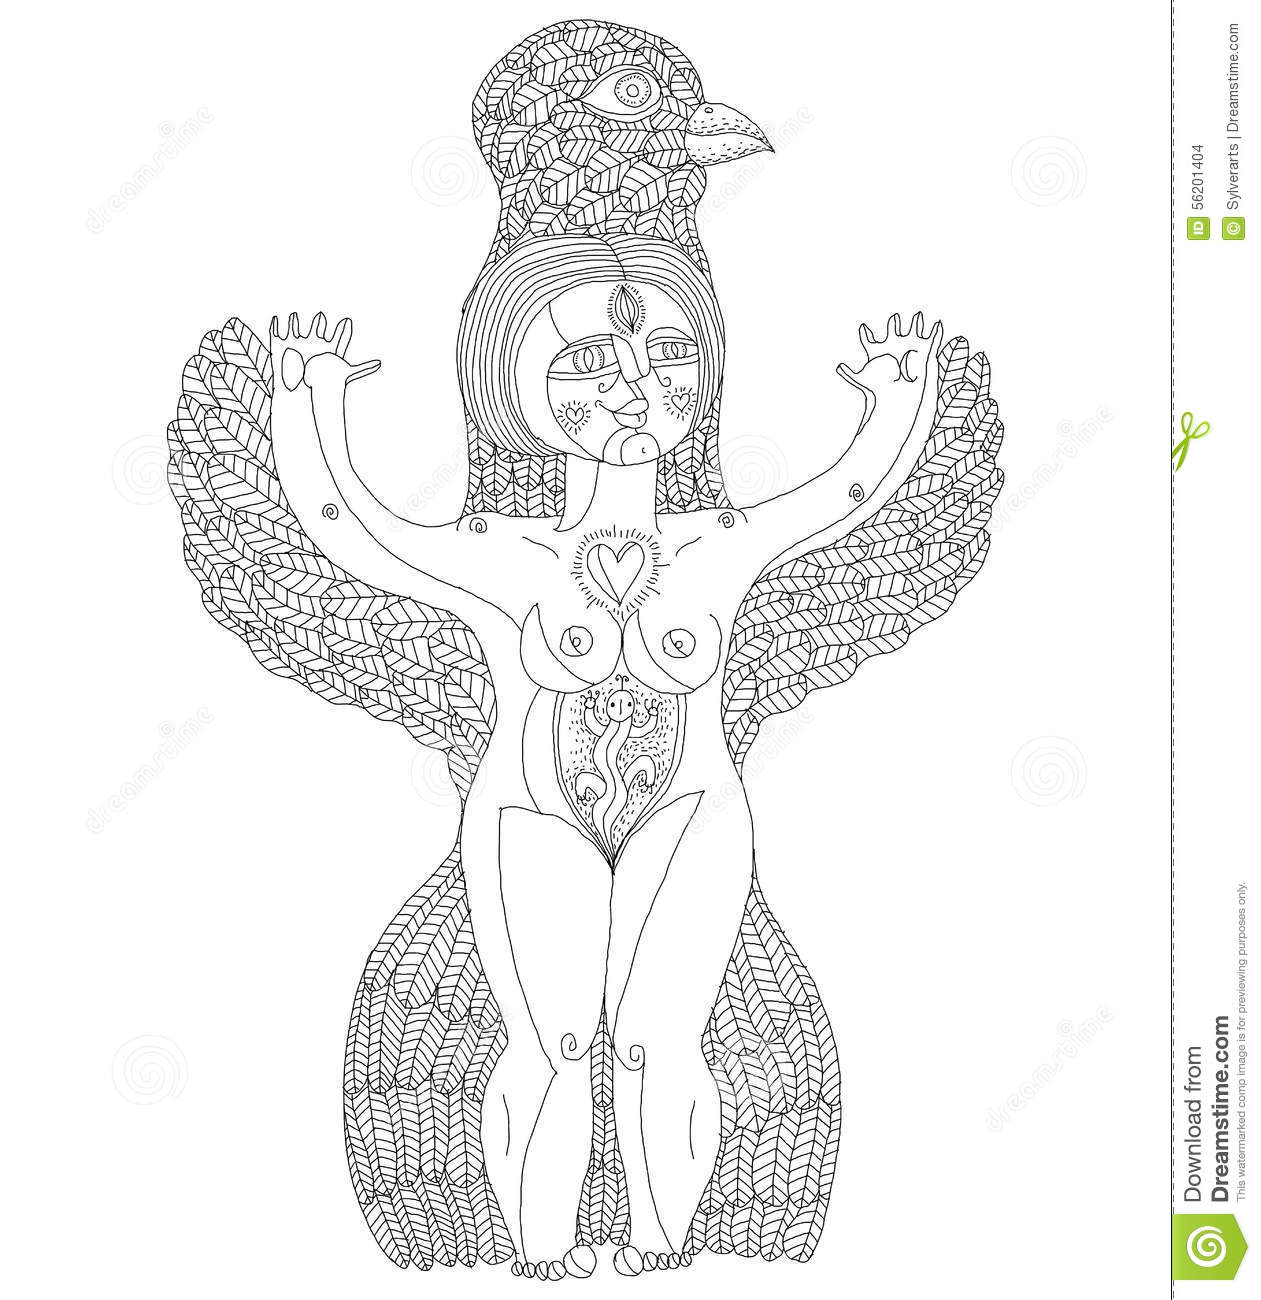 Vector black and white illustration of weird creature, nude woman with  wings, animal side of human being. Goddess conceptual hand drawn allegory  image.